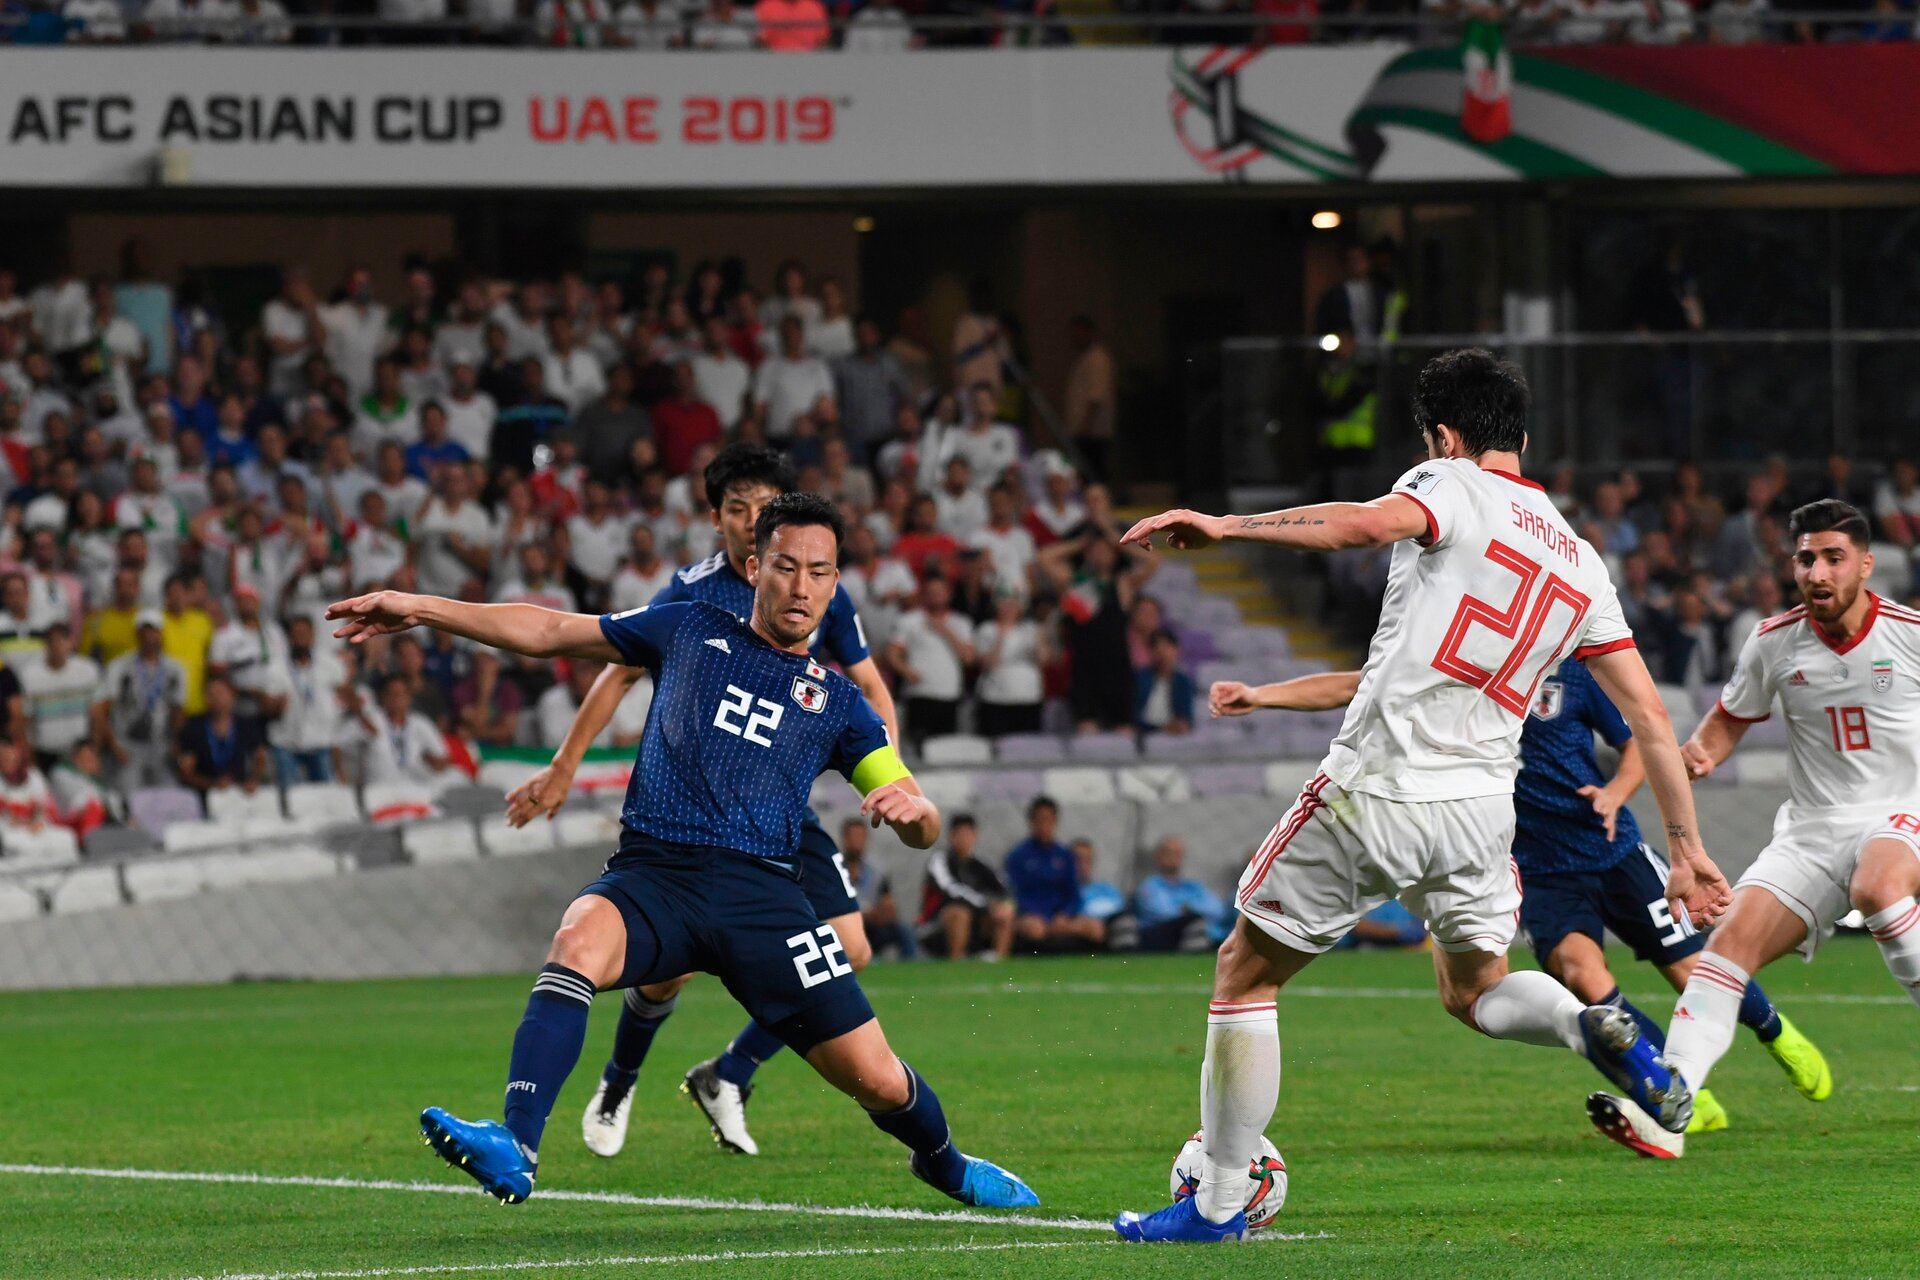 Iran's forward Sardar Azmoun (2nd-R) attempts a shot as he is closed down by Japan's defender Maya Yoshida (L) during the 2019 AFC Asian Cup semi-final football match between Iran and Japan at the Hazza Bin Zayed Stadium in Abu Dhabi on January 28, 2019. (Photo by Roslan RAHMAN / AFP)        (Photo credit should read ROSLAN RAHMAN/AFP/Getty Images)